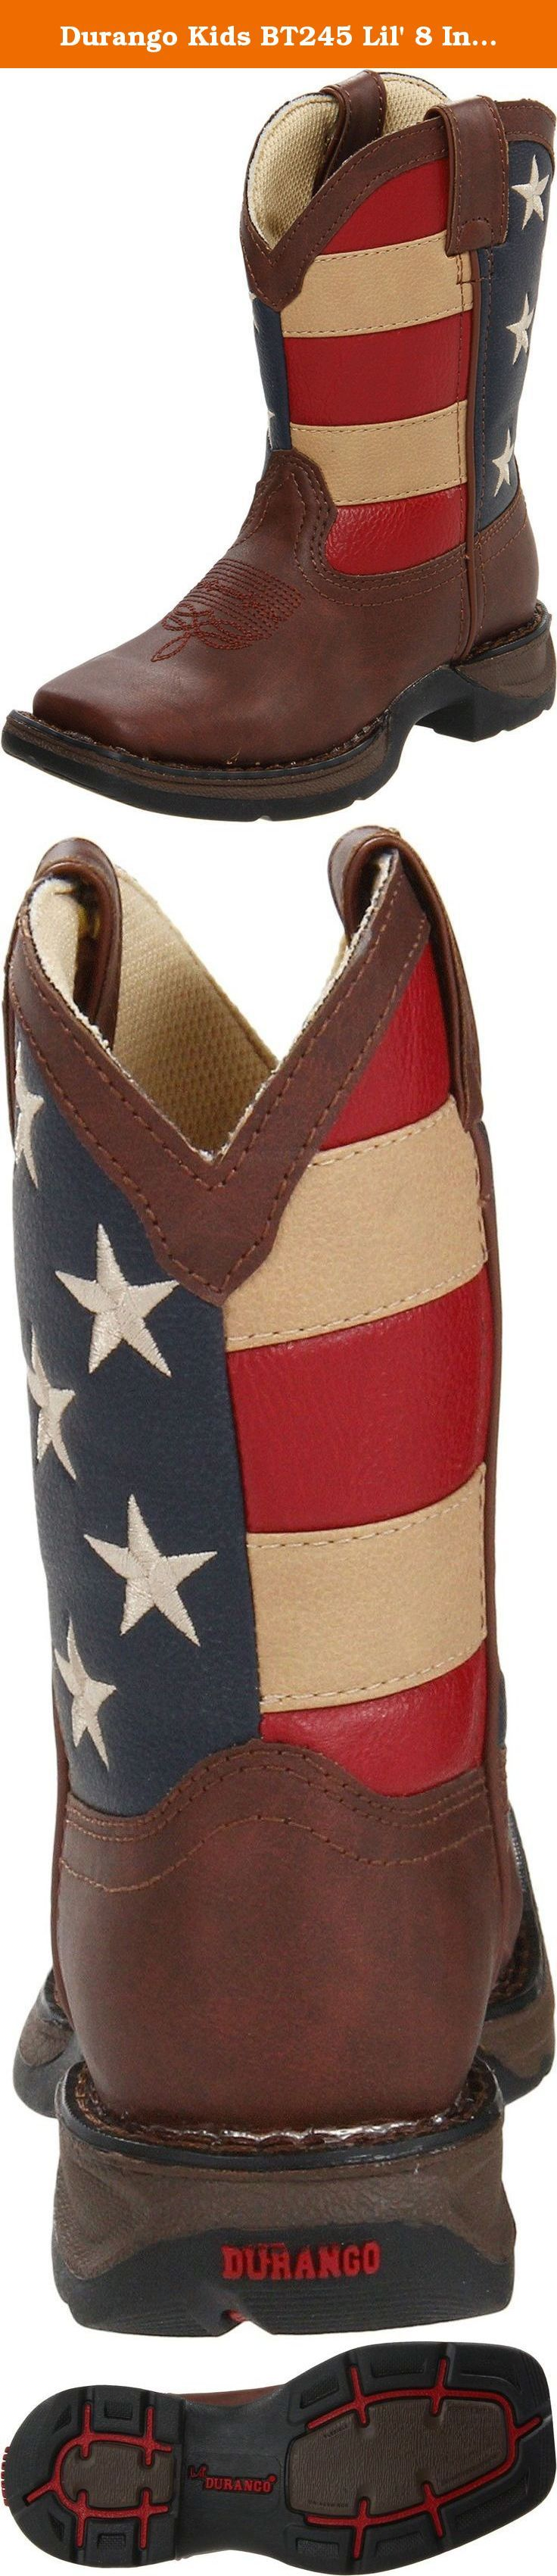 """Durango Kids BT245 Lil' 8 Inch Patriotic. The Durango Lil' Flirt cowboy boots provide extreme quality, comfort, and style for your beginner buckaroo's feet. This children's cowboy boot features a brown manmade leather foot under an 8"""" American flag decorated faux leather shaft. Rolled shank area. Piping details and easy pull-on holes. Soft mesh lining. Single-stitch welt. 1 1/8"""" rocker heel. Imported."""